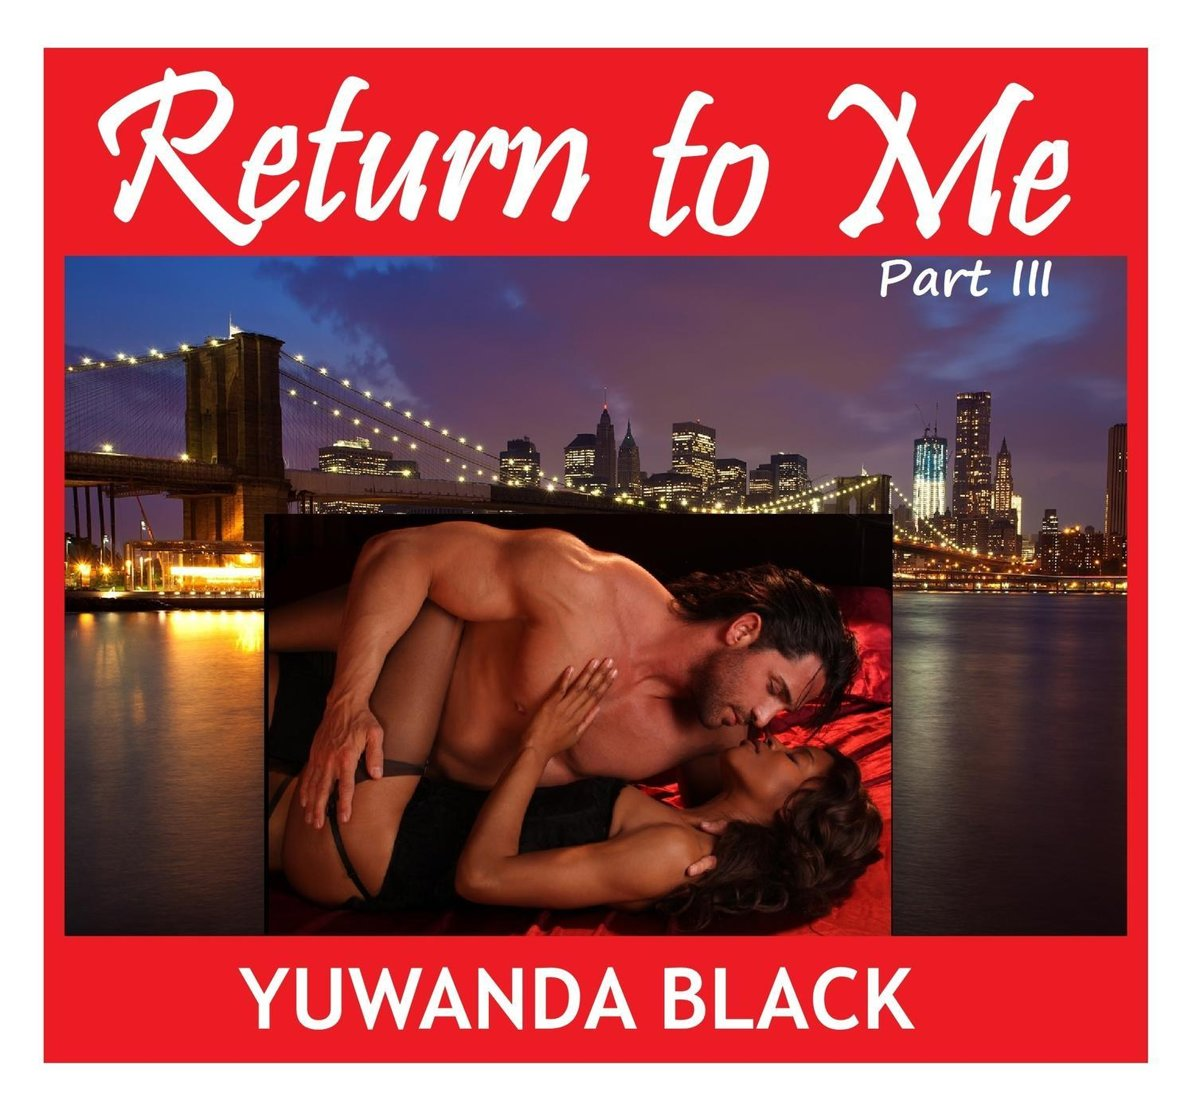 Return to Me: Part III